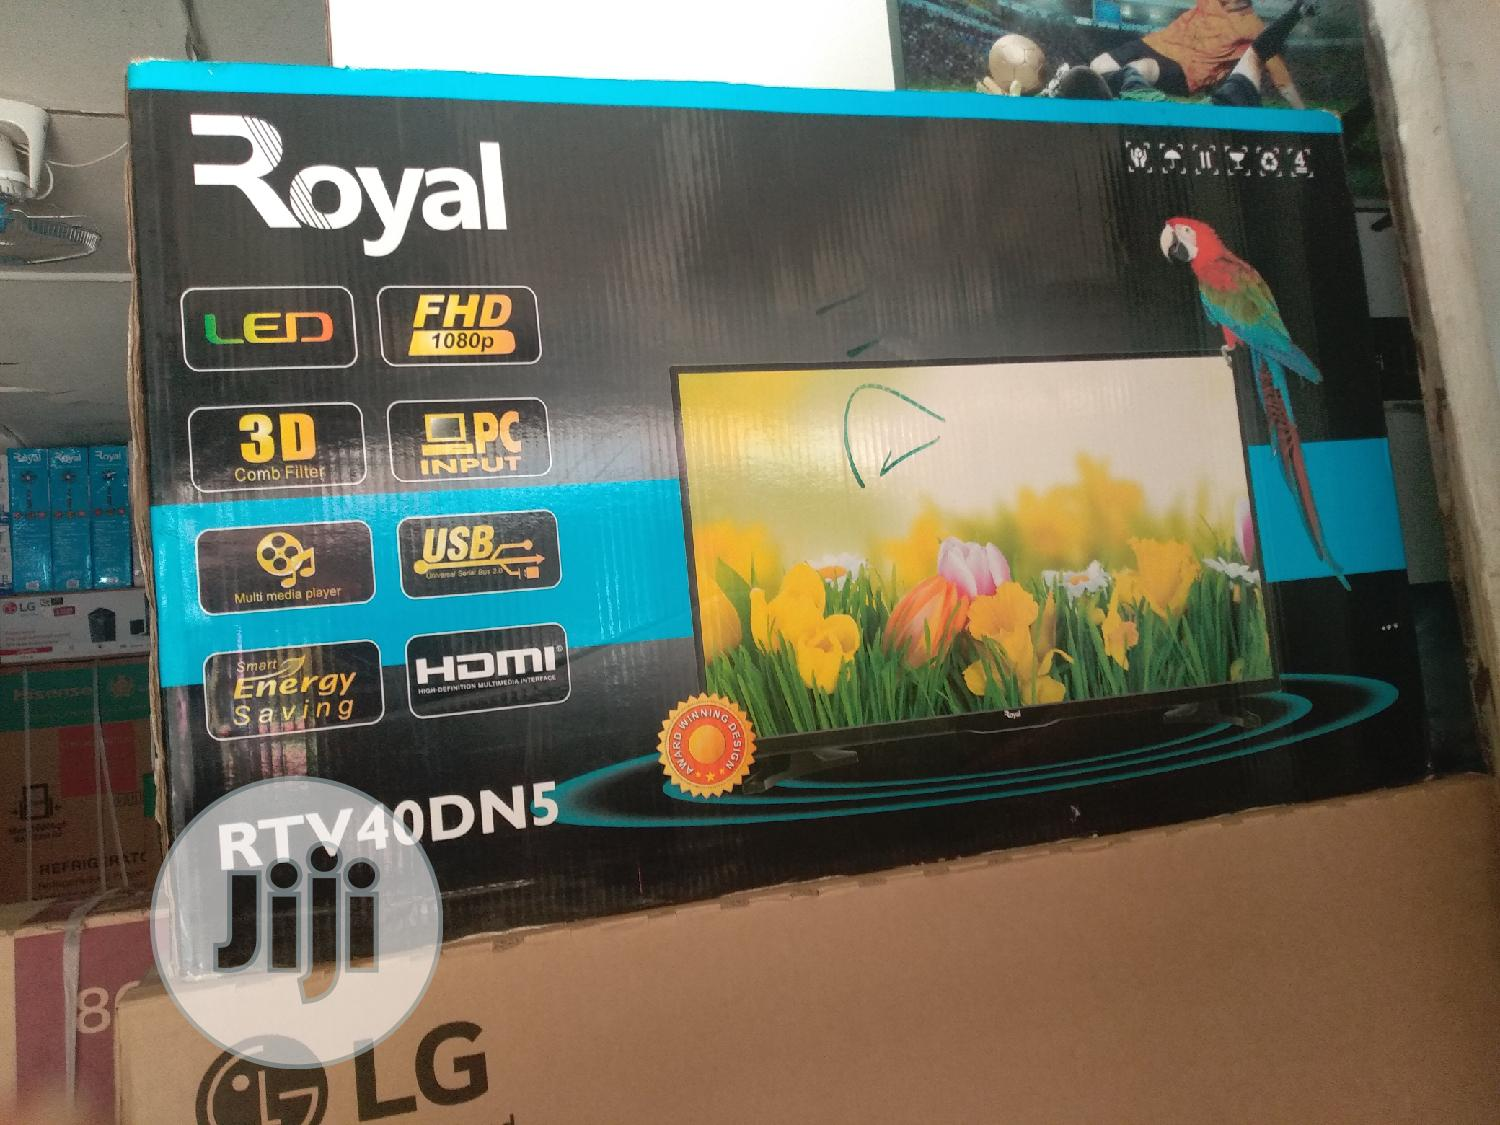 Royal Television 40inches Led Tv Wirh 3d Combo Filter.